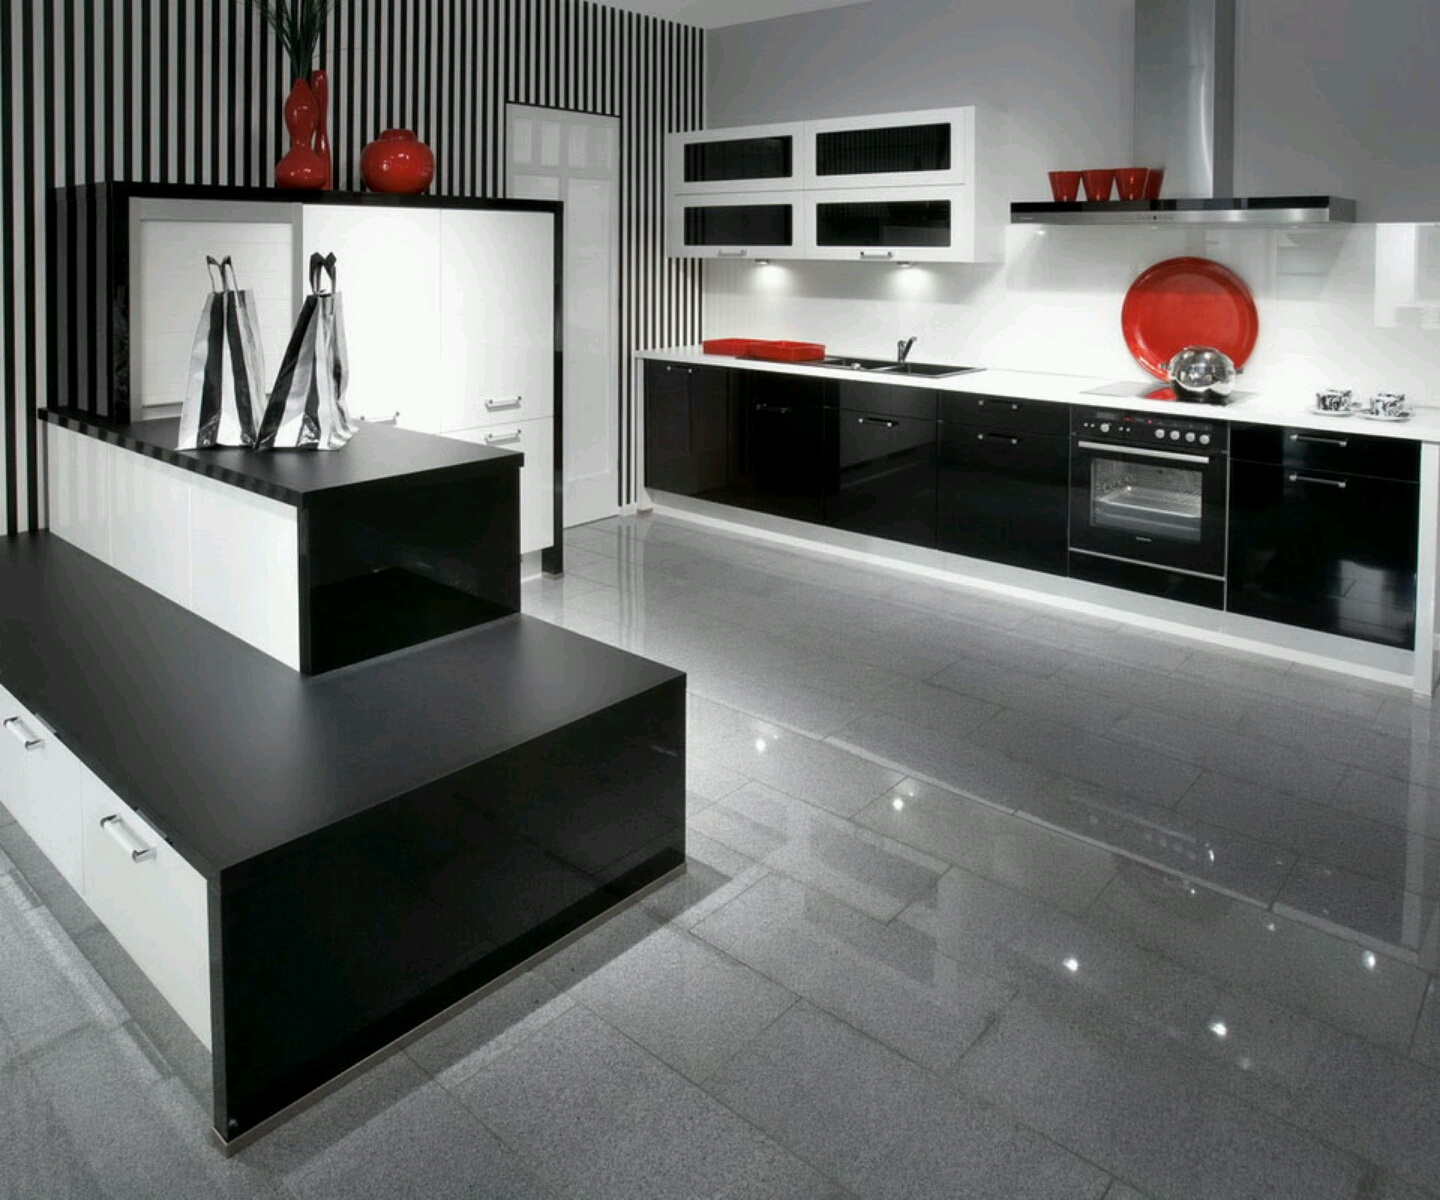 Remarkable Modern Kitchen CabiDesign Ideas 1440 x 1200 · 1053 kB · jpeg